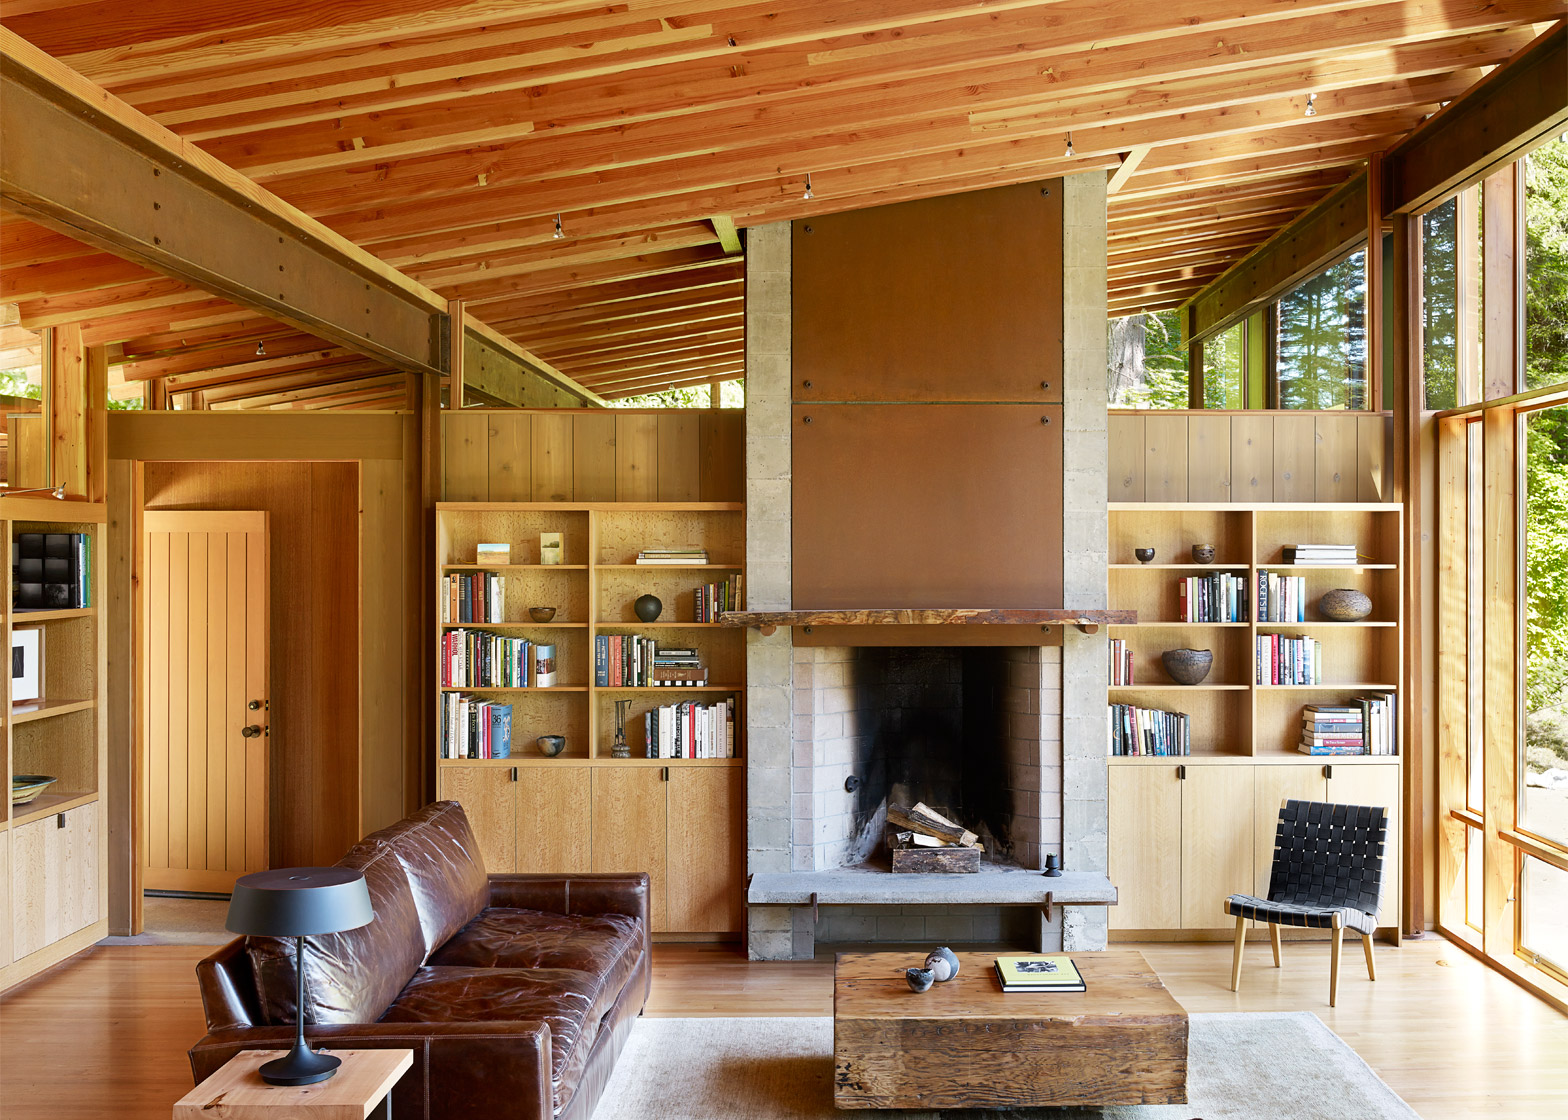 Newberg residence by Cutler Anderson Architects